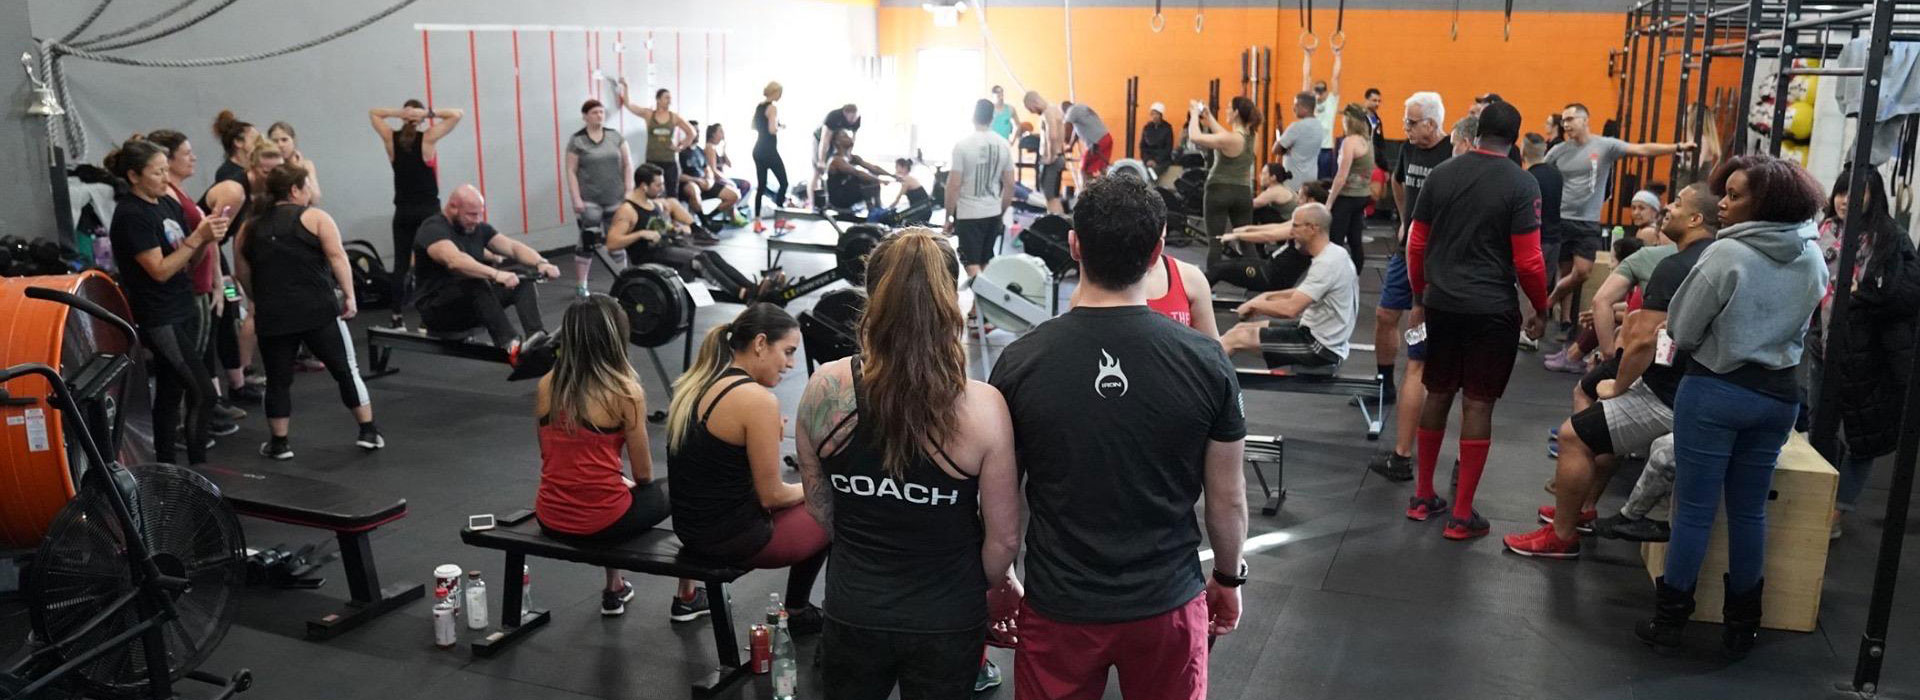 A Gym In North Brunswick That Can Help With Weight loss & Dieting